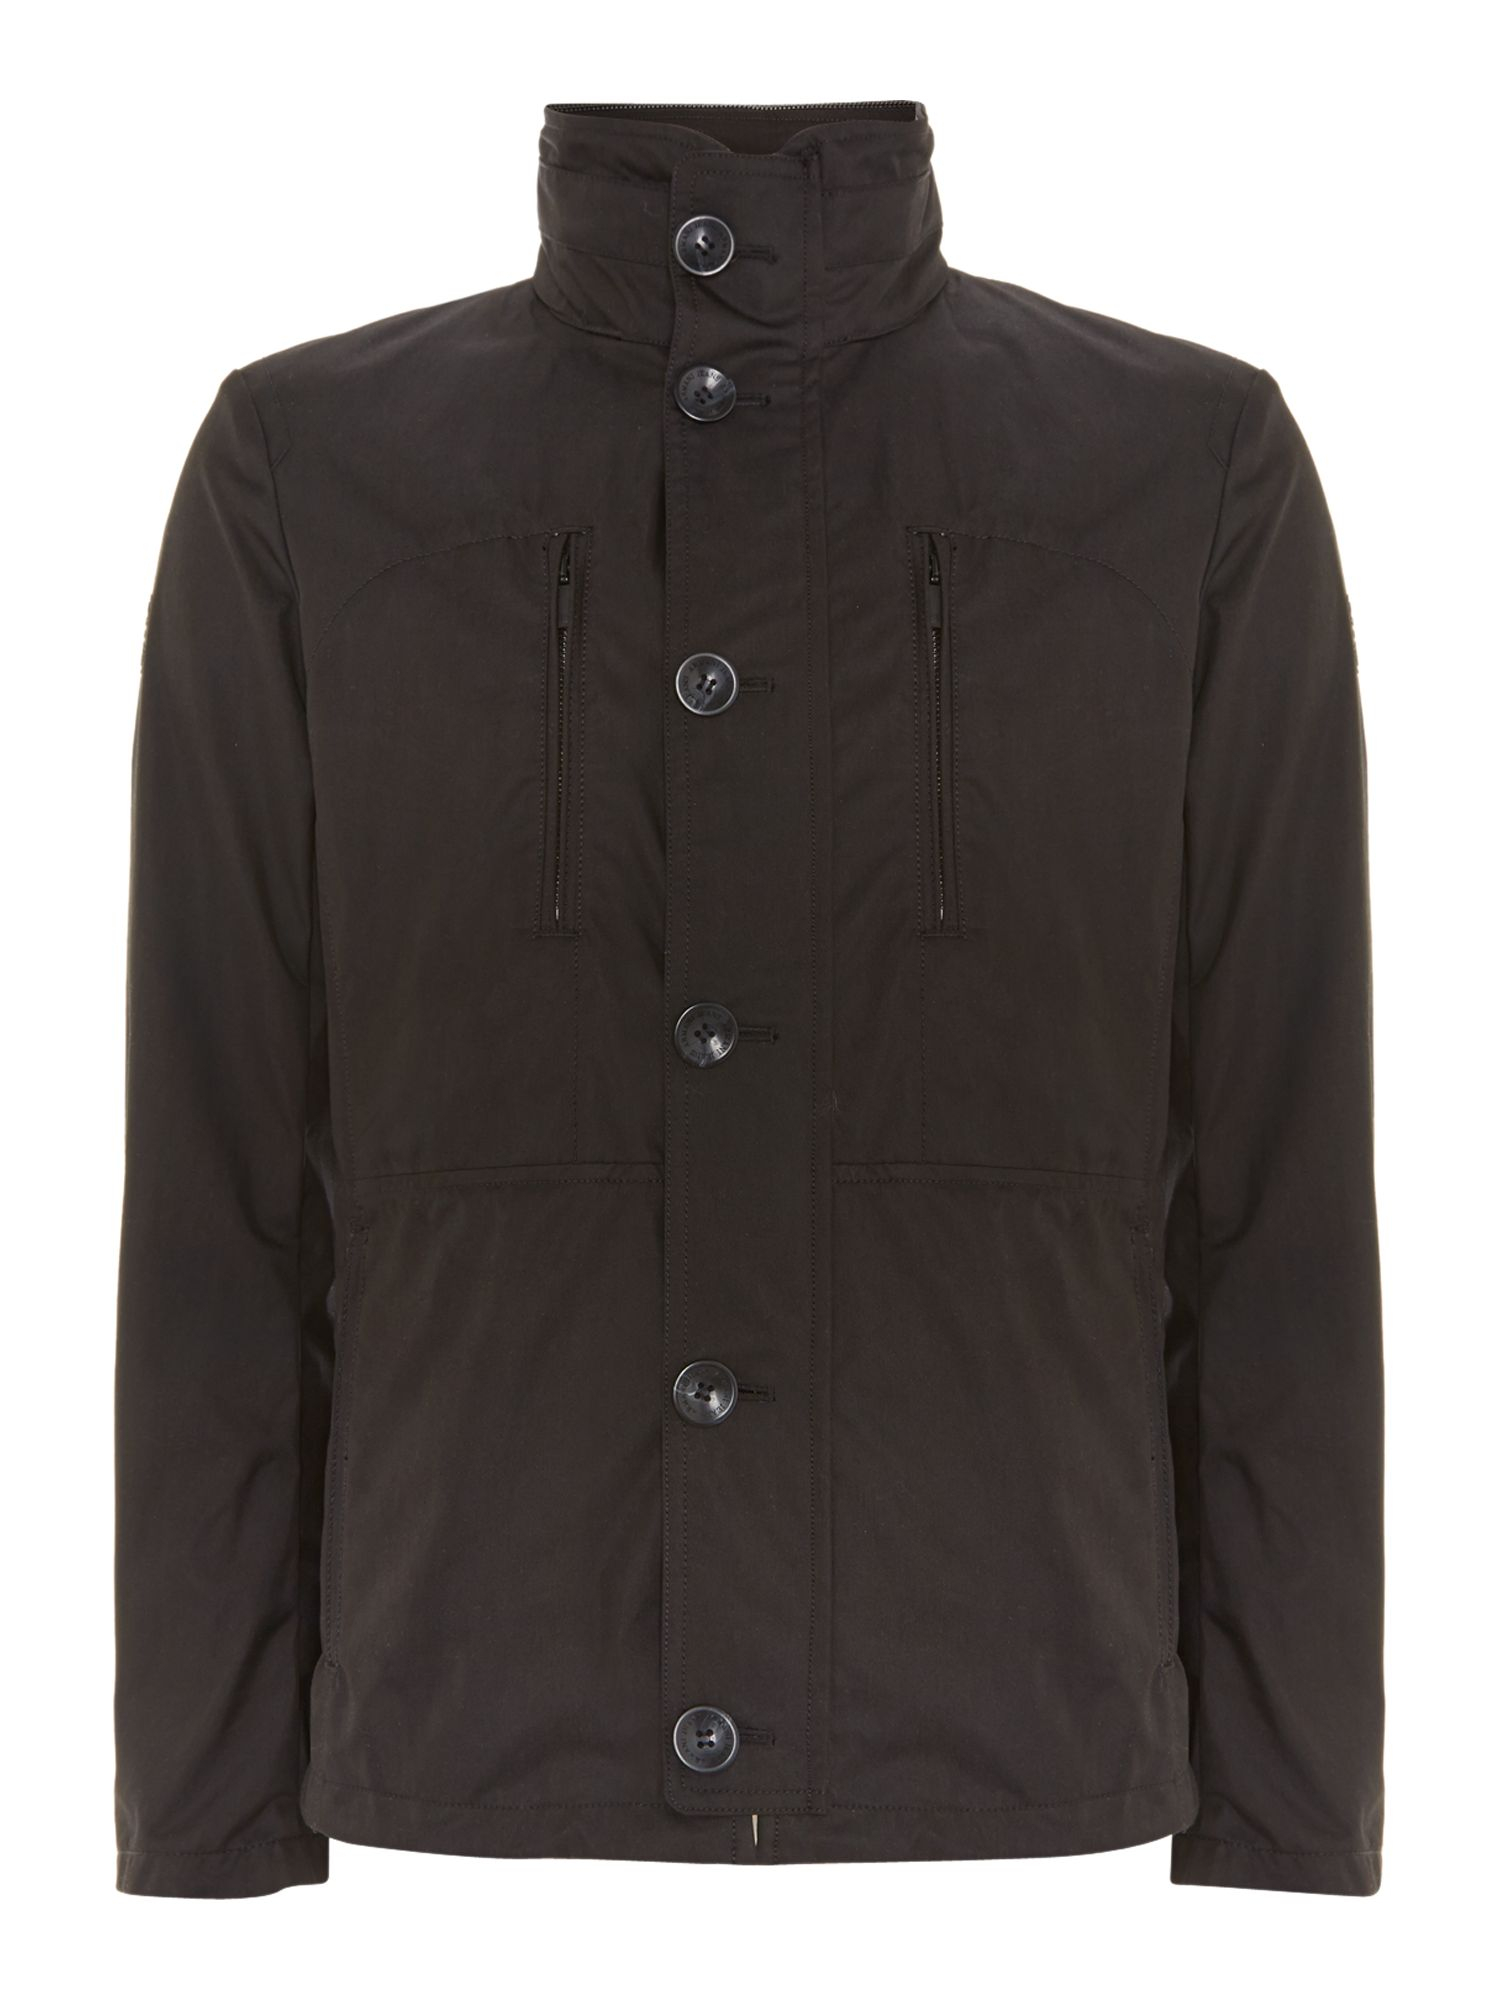 Armani jeans Button Through 4 Pocket Jacket in Black for Men | Lyst